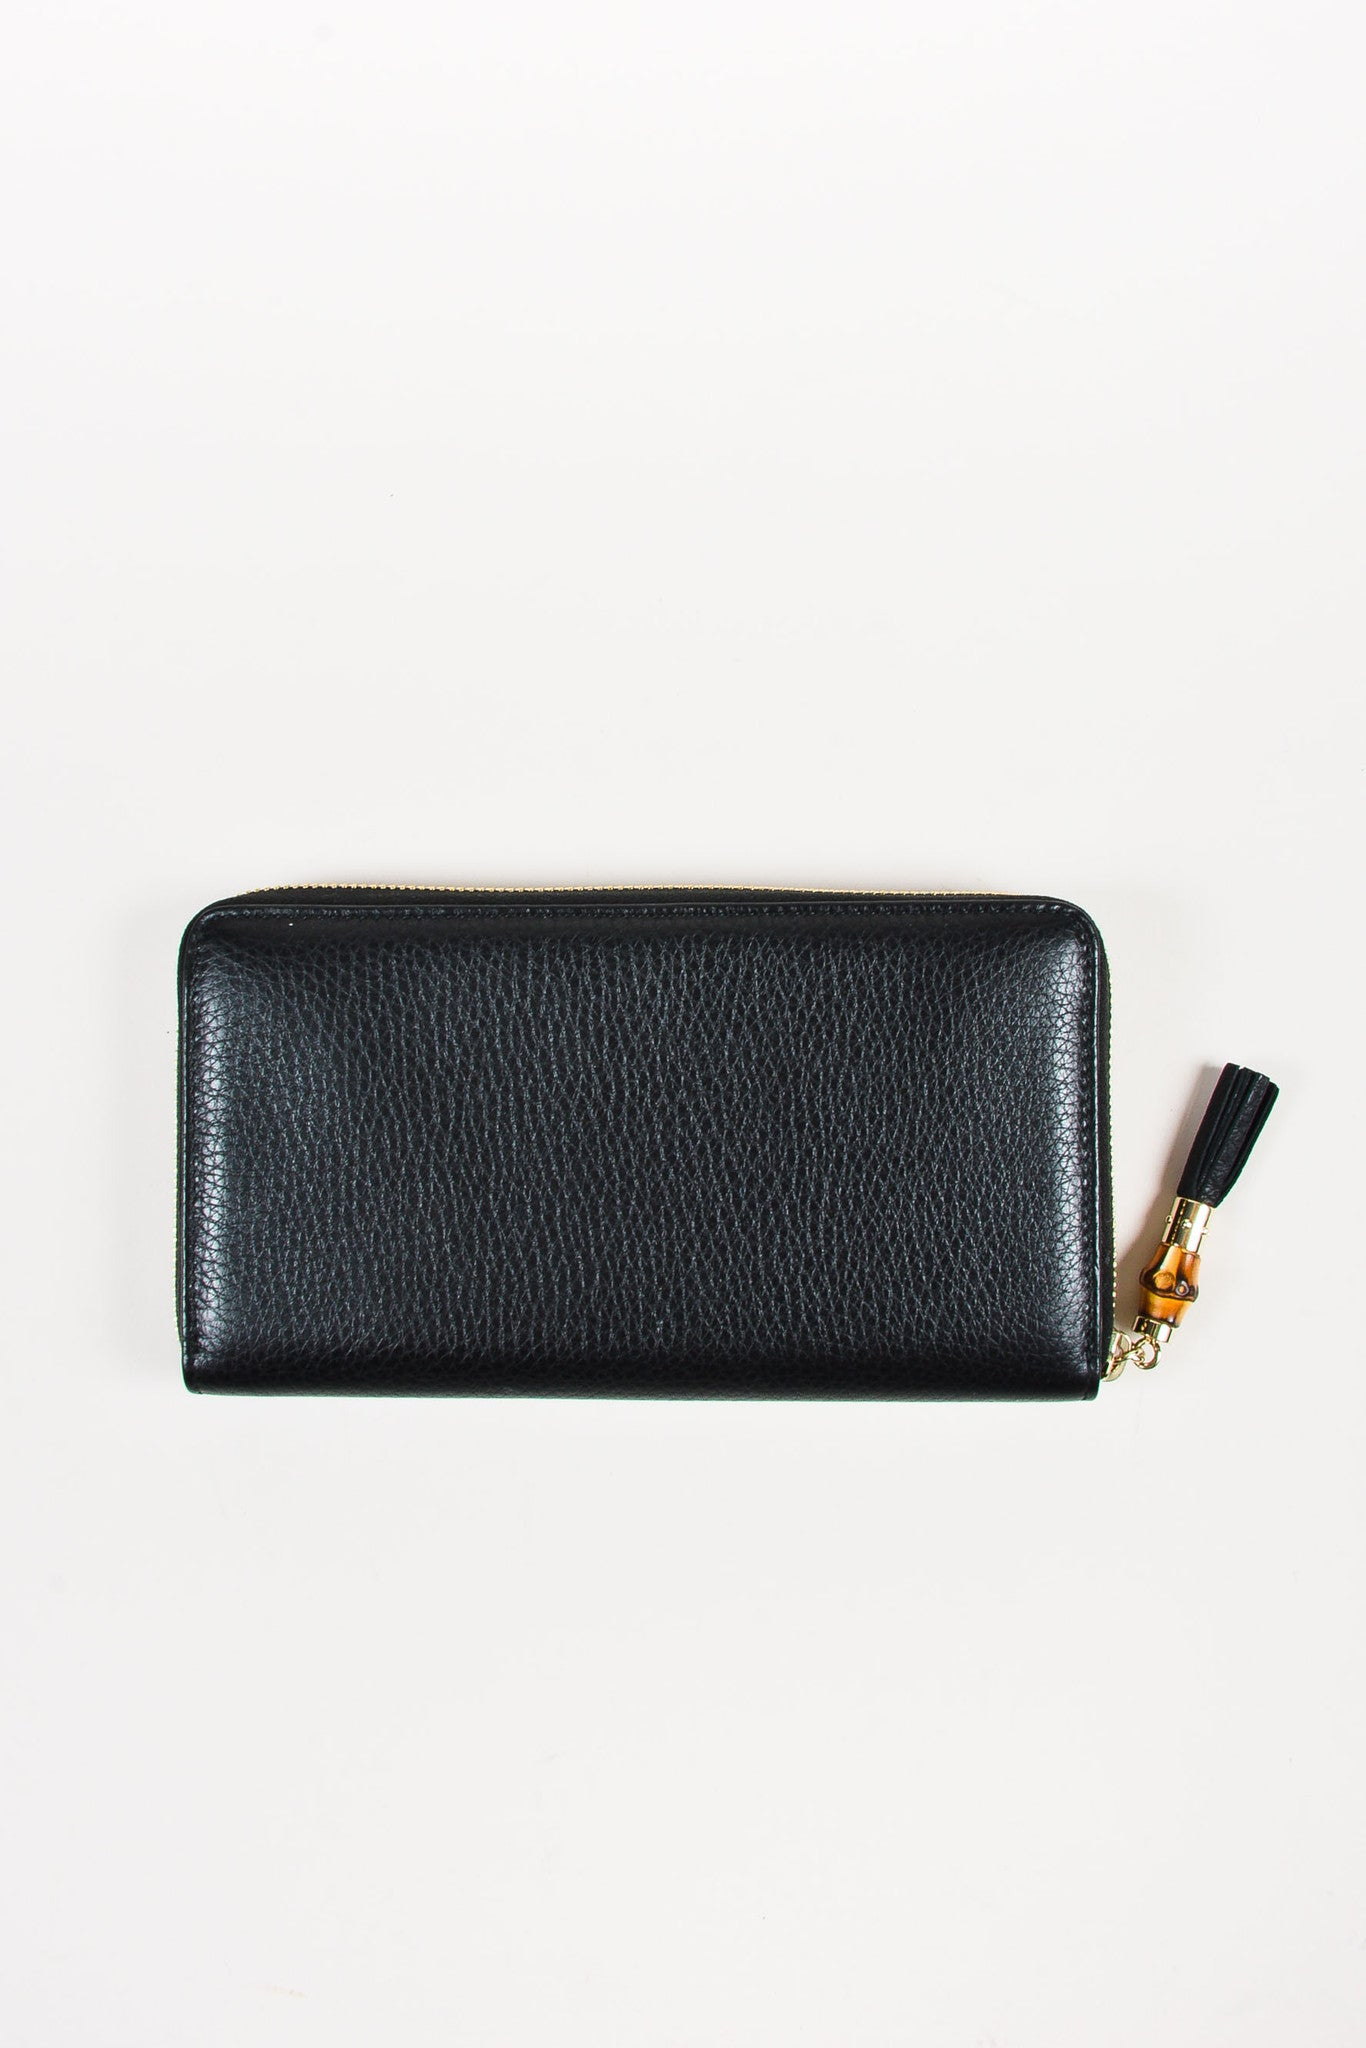 "Gucci Black Gold Toned Leather Bamboo Tassel ""Zip Around"" Wallet Backview"